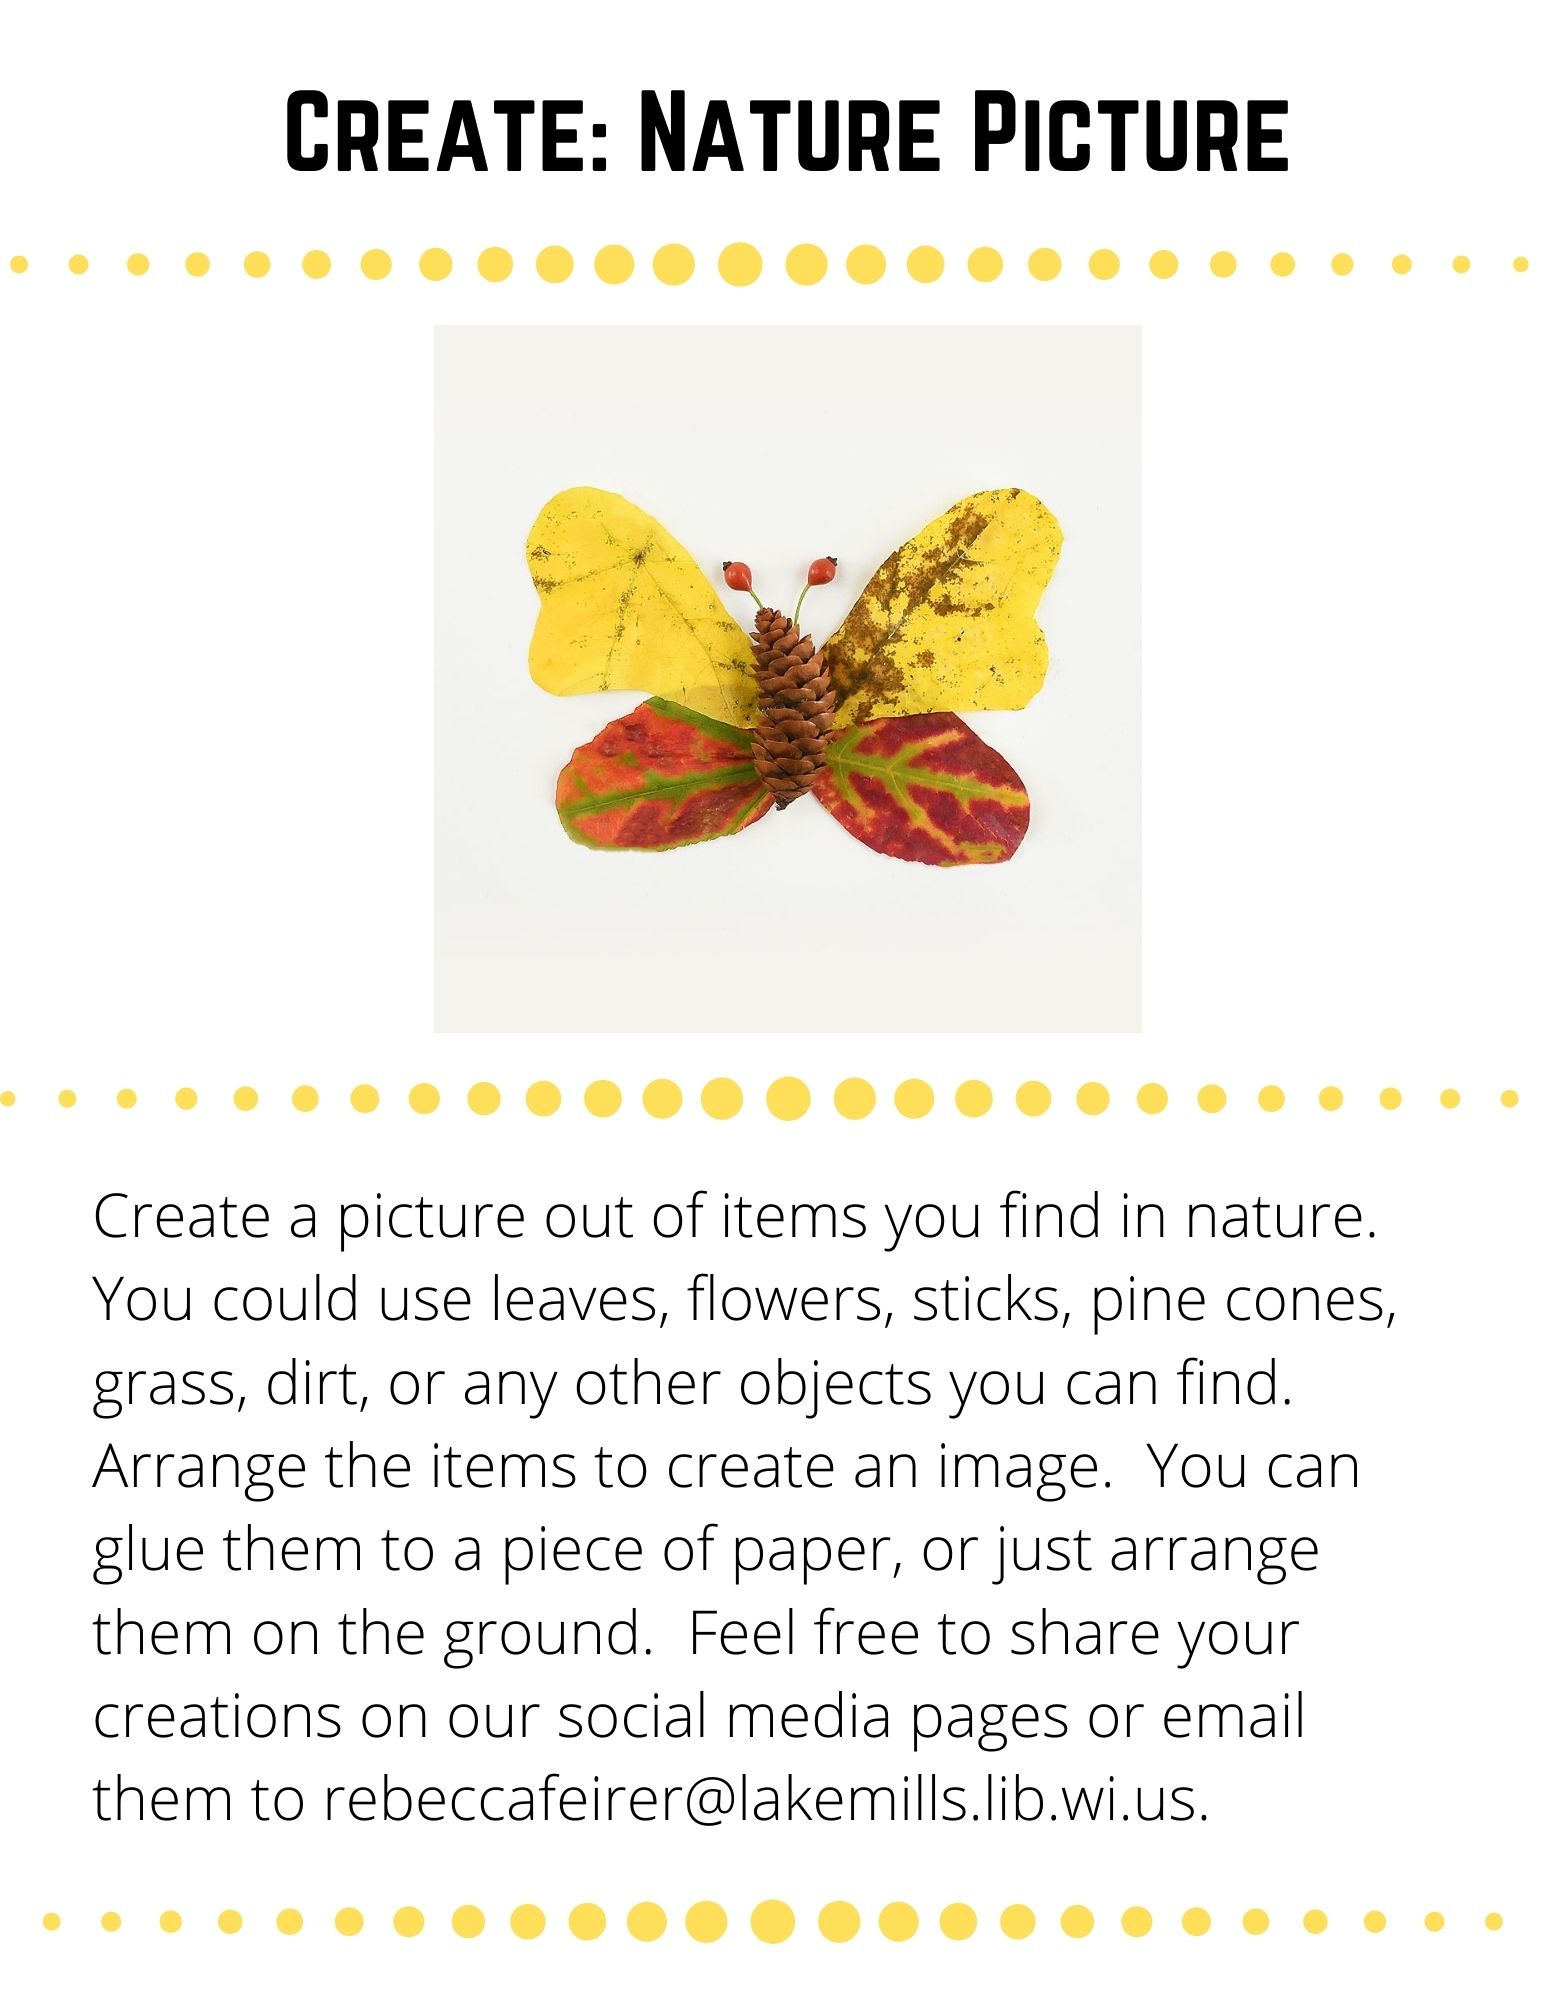 Create: Nature Picture: Create a picture out of items you find in nature.  You could use leaves, flowers, sticks, pine cones, grass, dirt, or any other objects you can find. Arrange the items to create an image.  You can glue them to a piece of paper, or just arrange them on the ground.  Feel free to share your creations on our social media pages or email them to rebeccafeirer@lakemills.lib.wi.us.